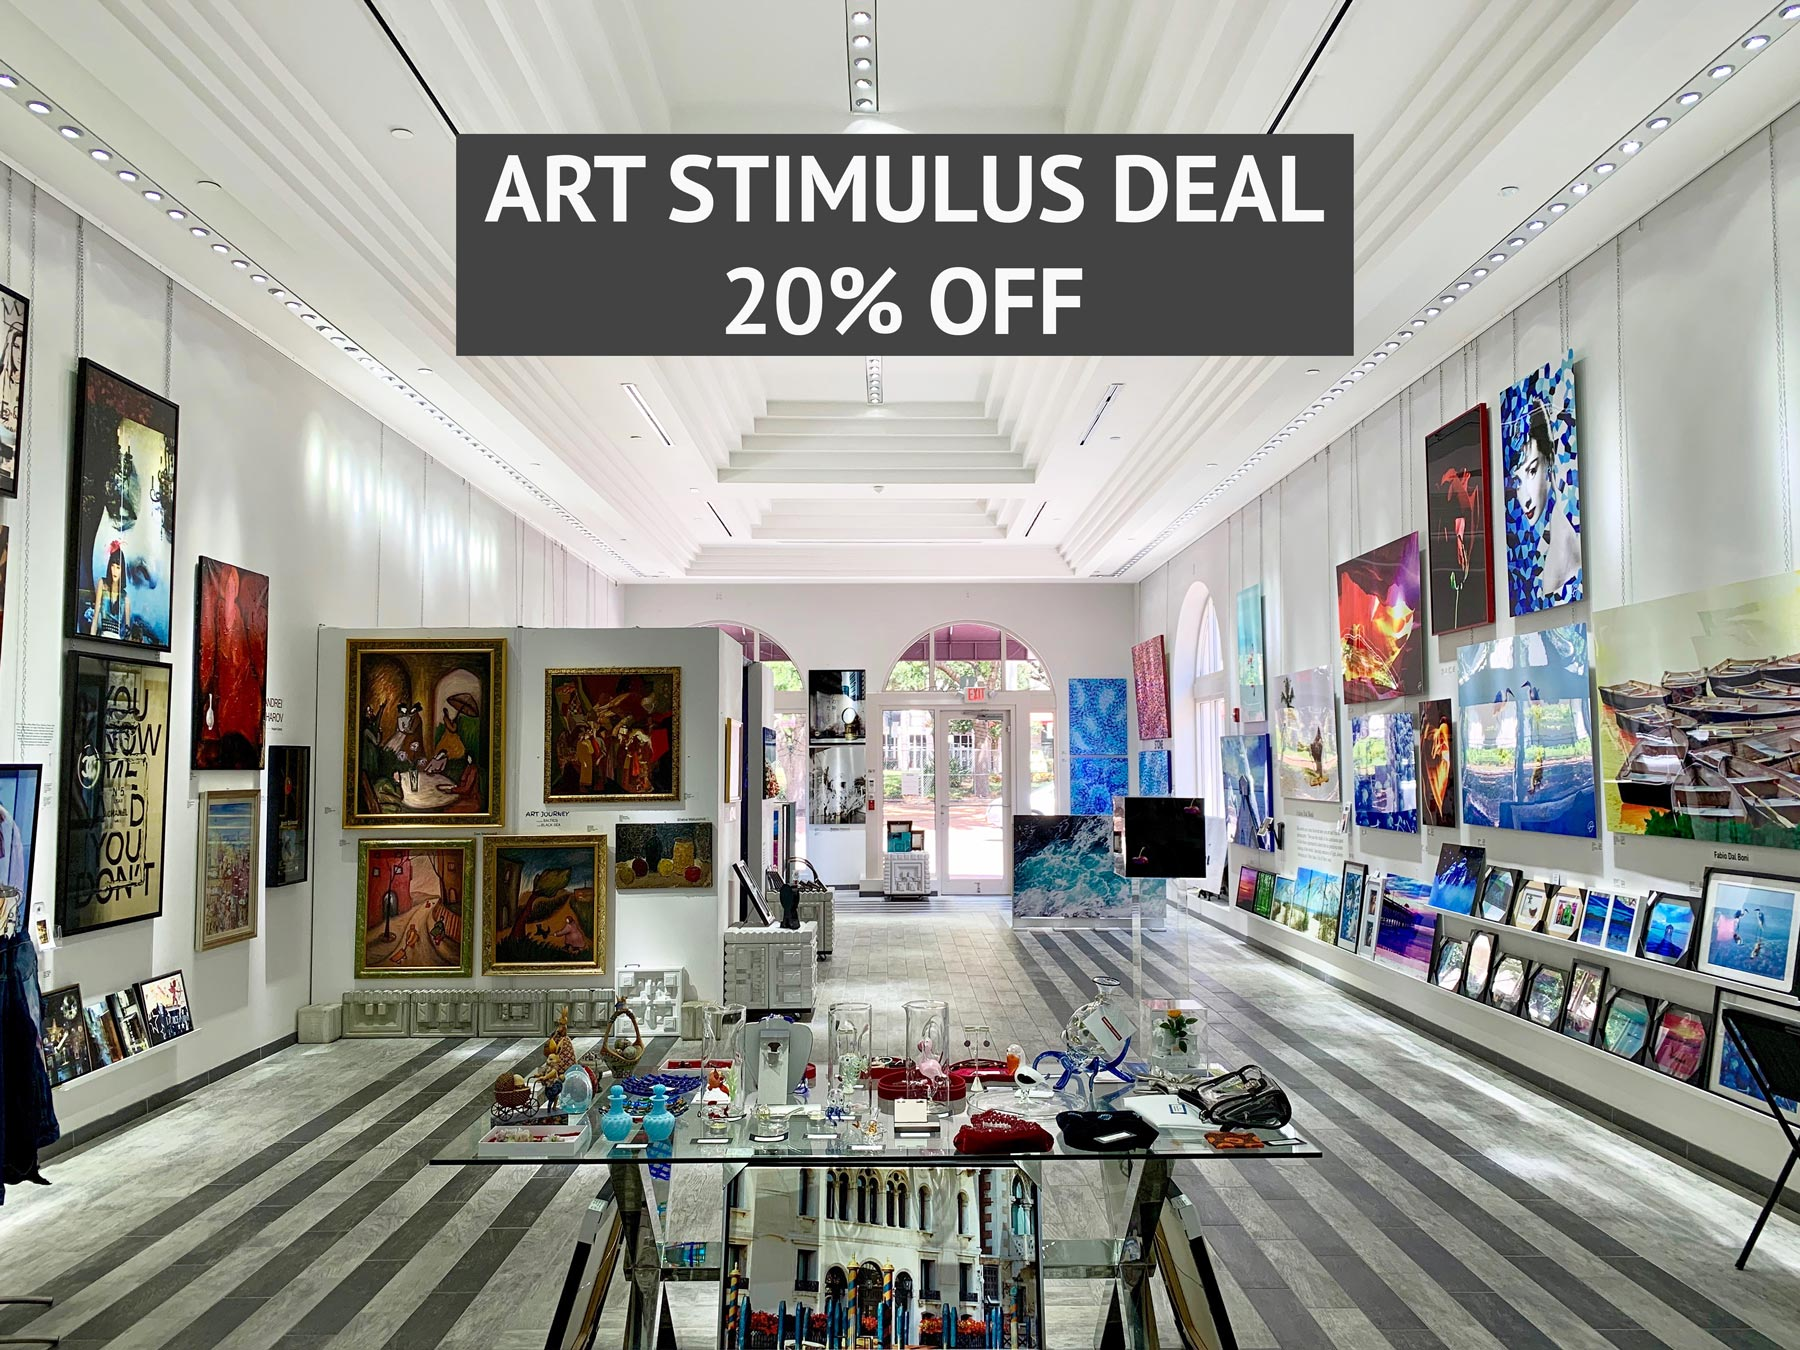 ART STIMULUS DEAL 2 Proudly Presents